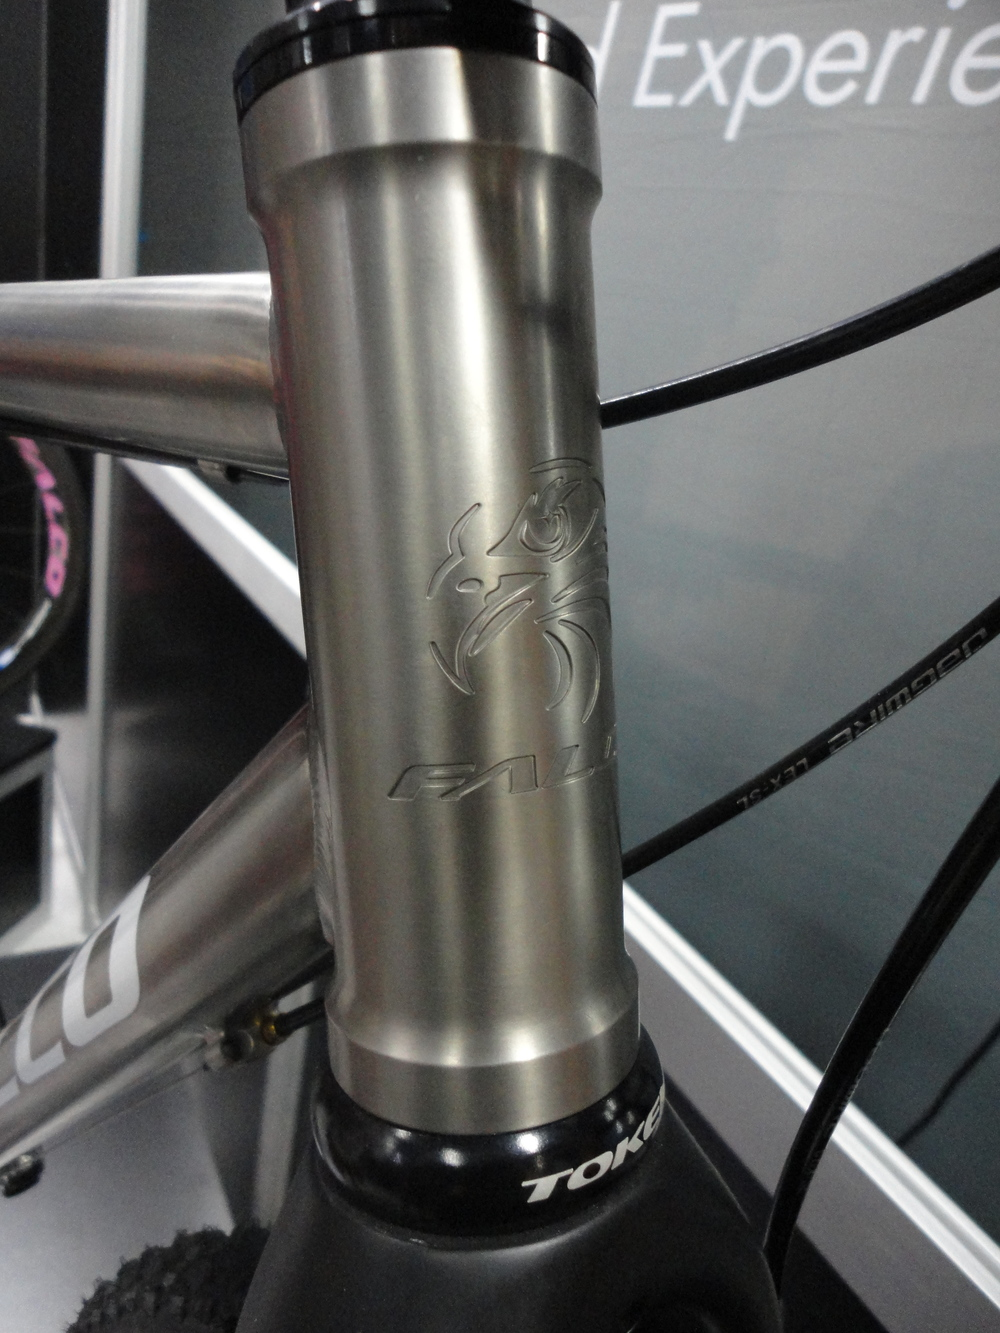 Engraved head-tube badge is a nice touch over the standard riveted version found on most bikes.